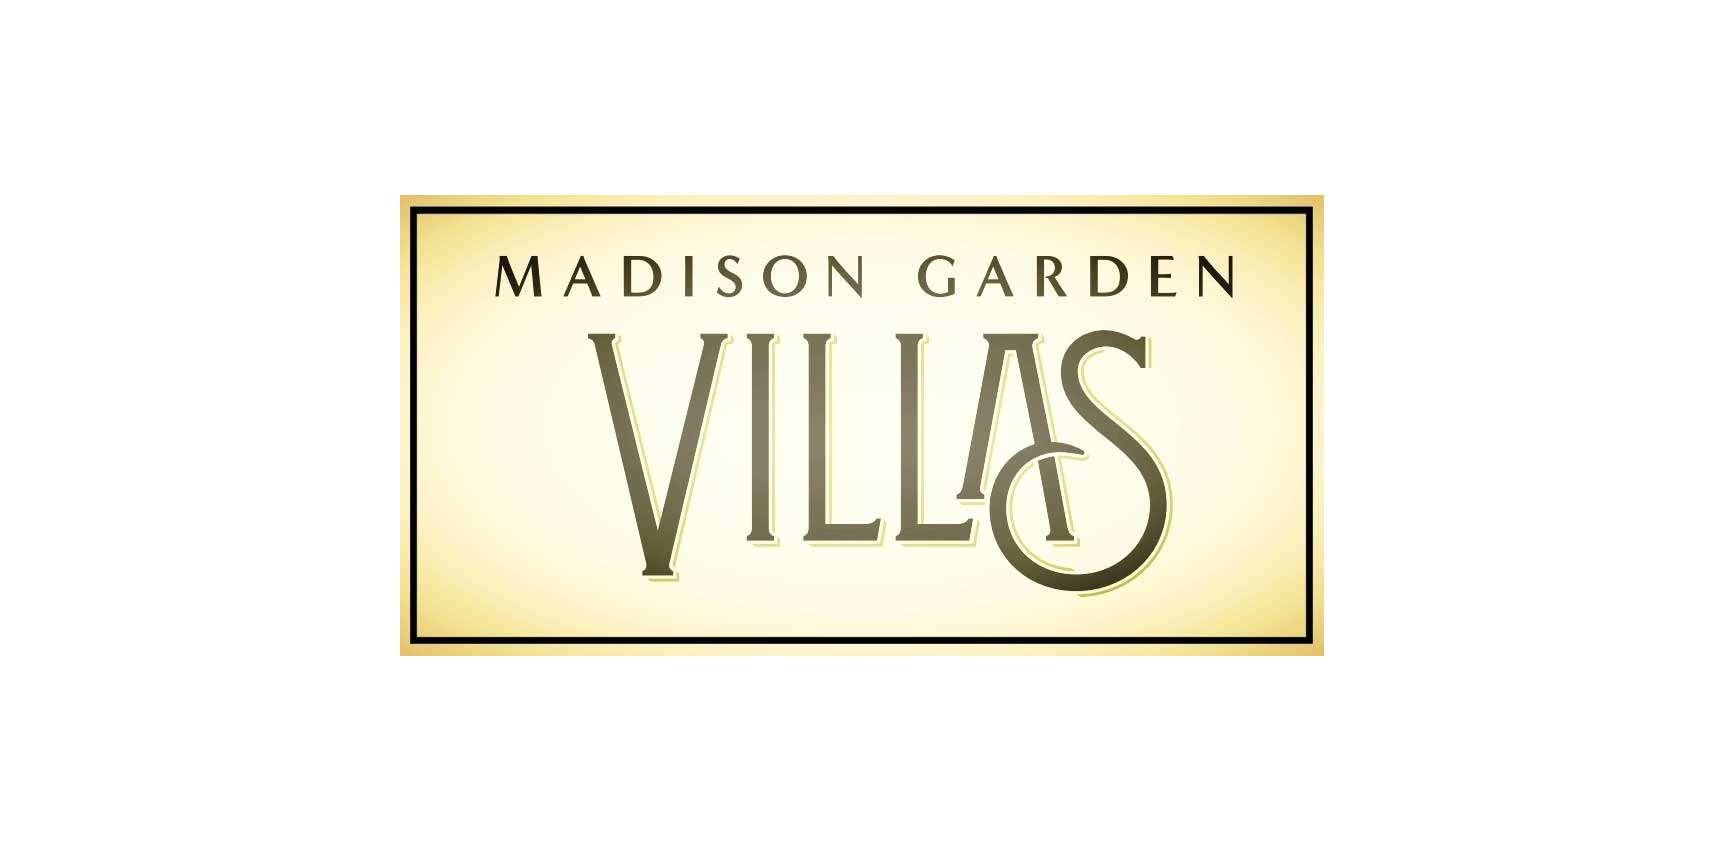 House for sale: Madison Garden Villas